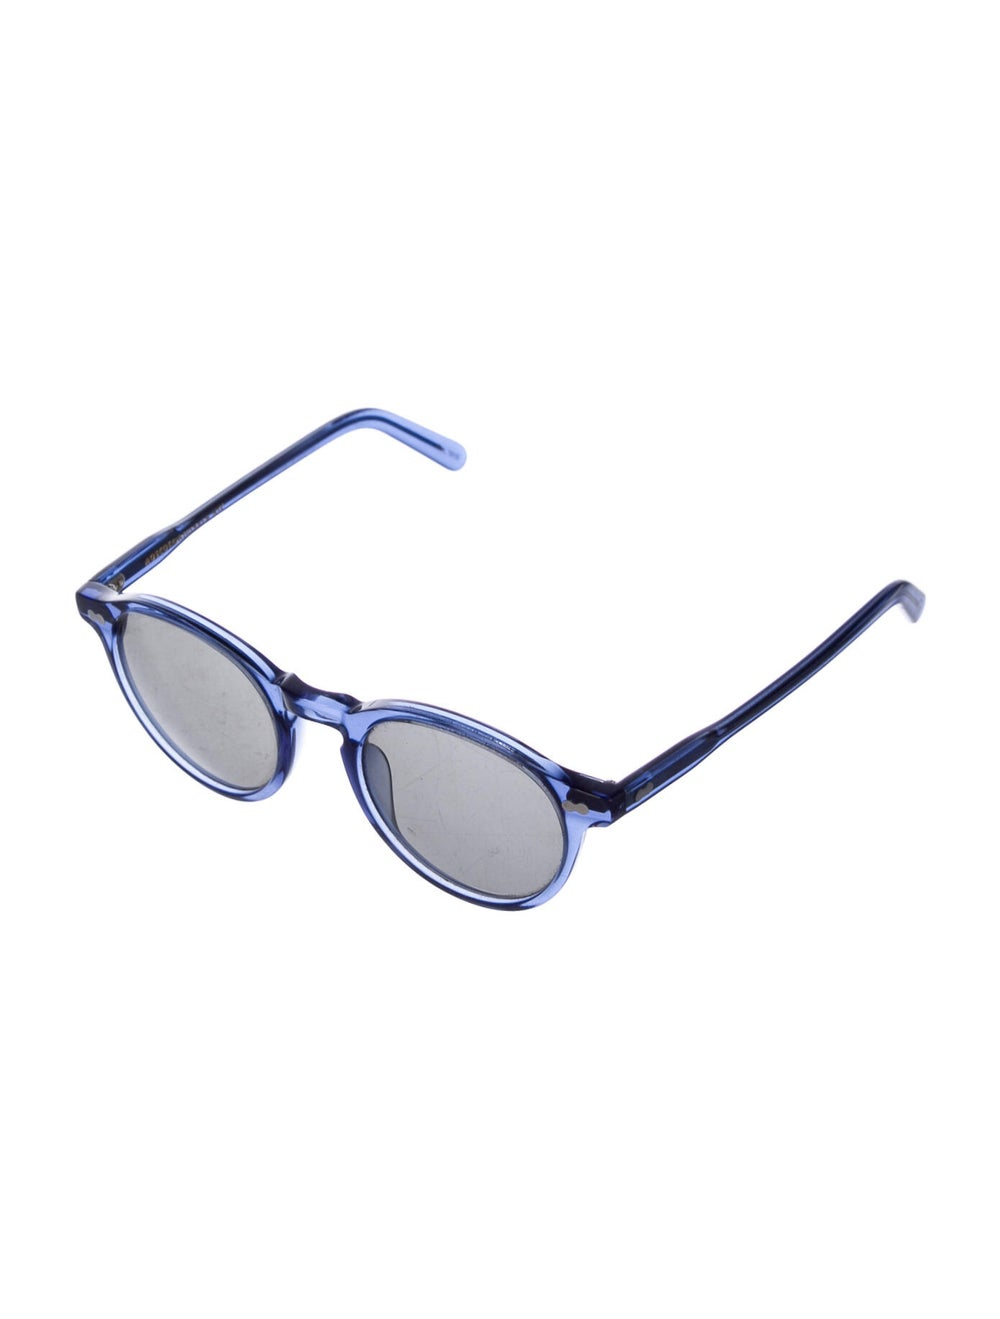 Moscot Round Tinted Sunglasses Blue - image 2